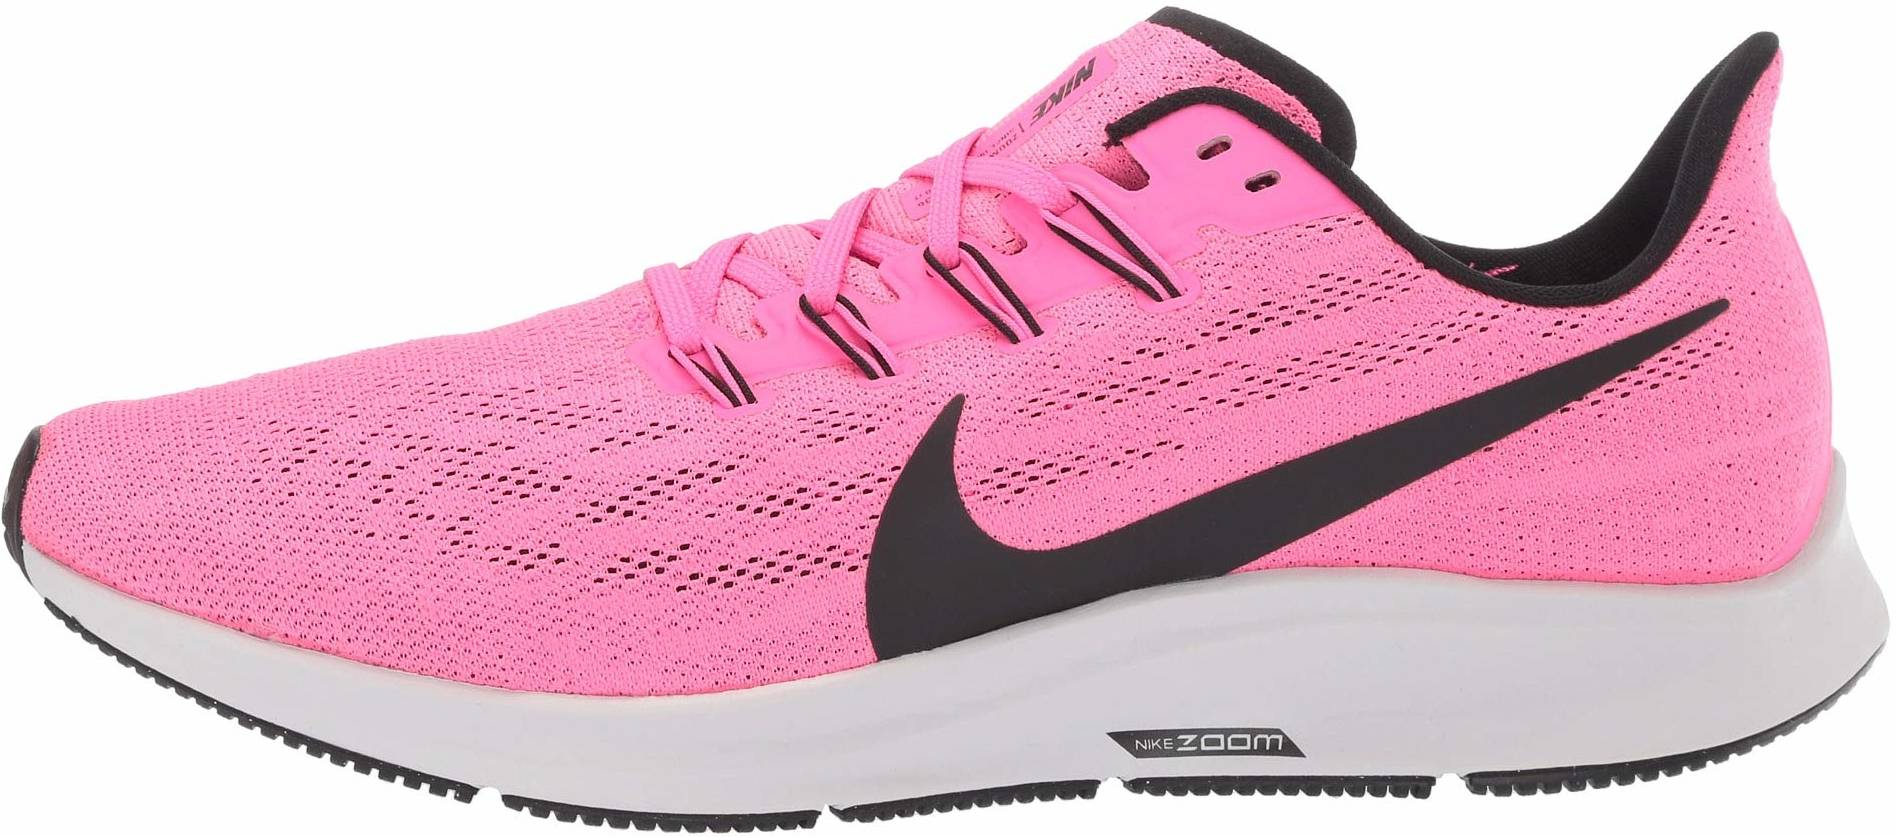 Save 39% on Pink Running Shoes (48